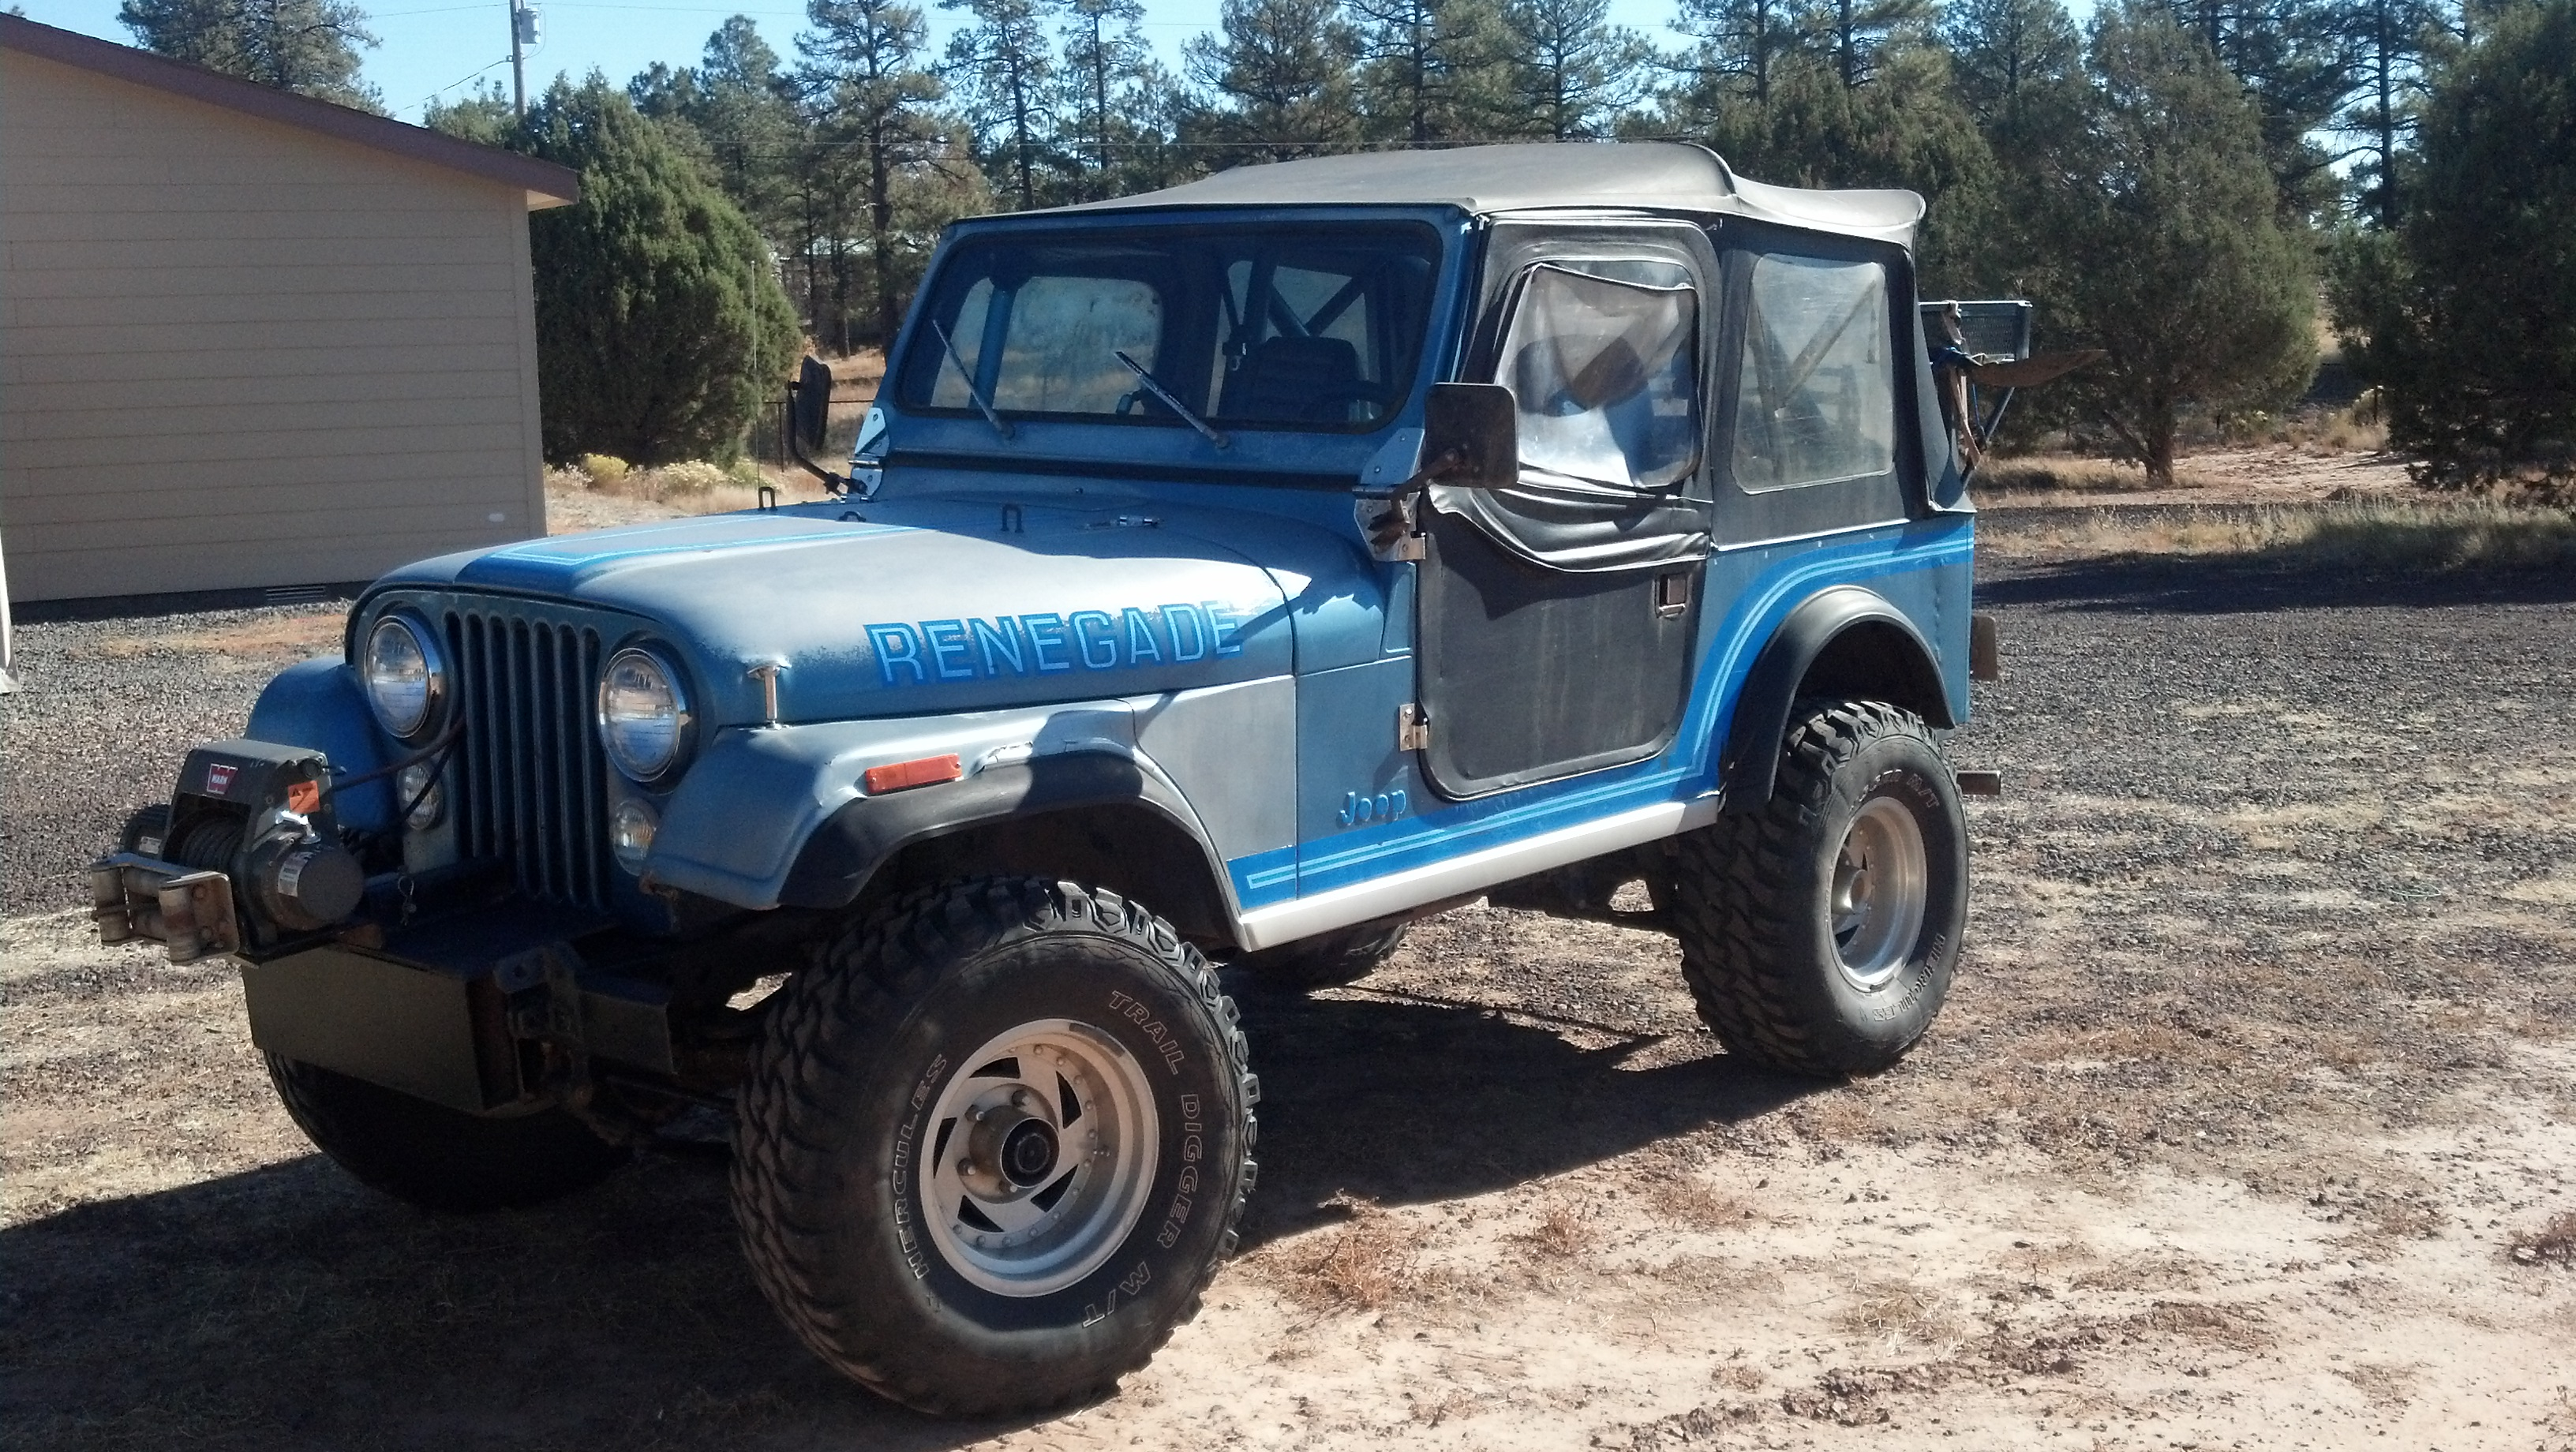 Used Cj7 Jeeps Sale for Pinterest